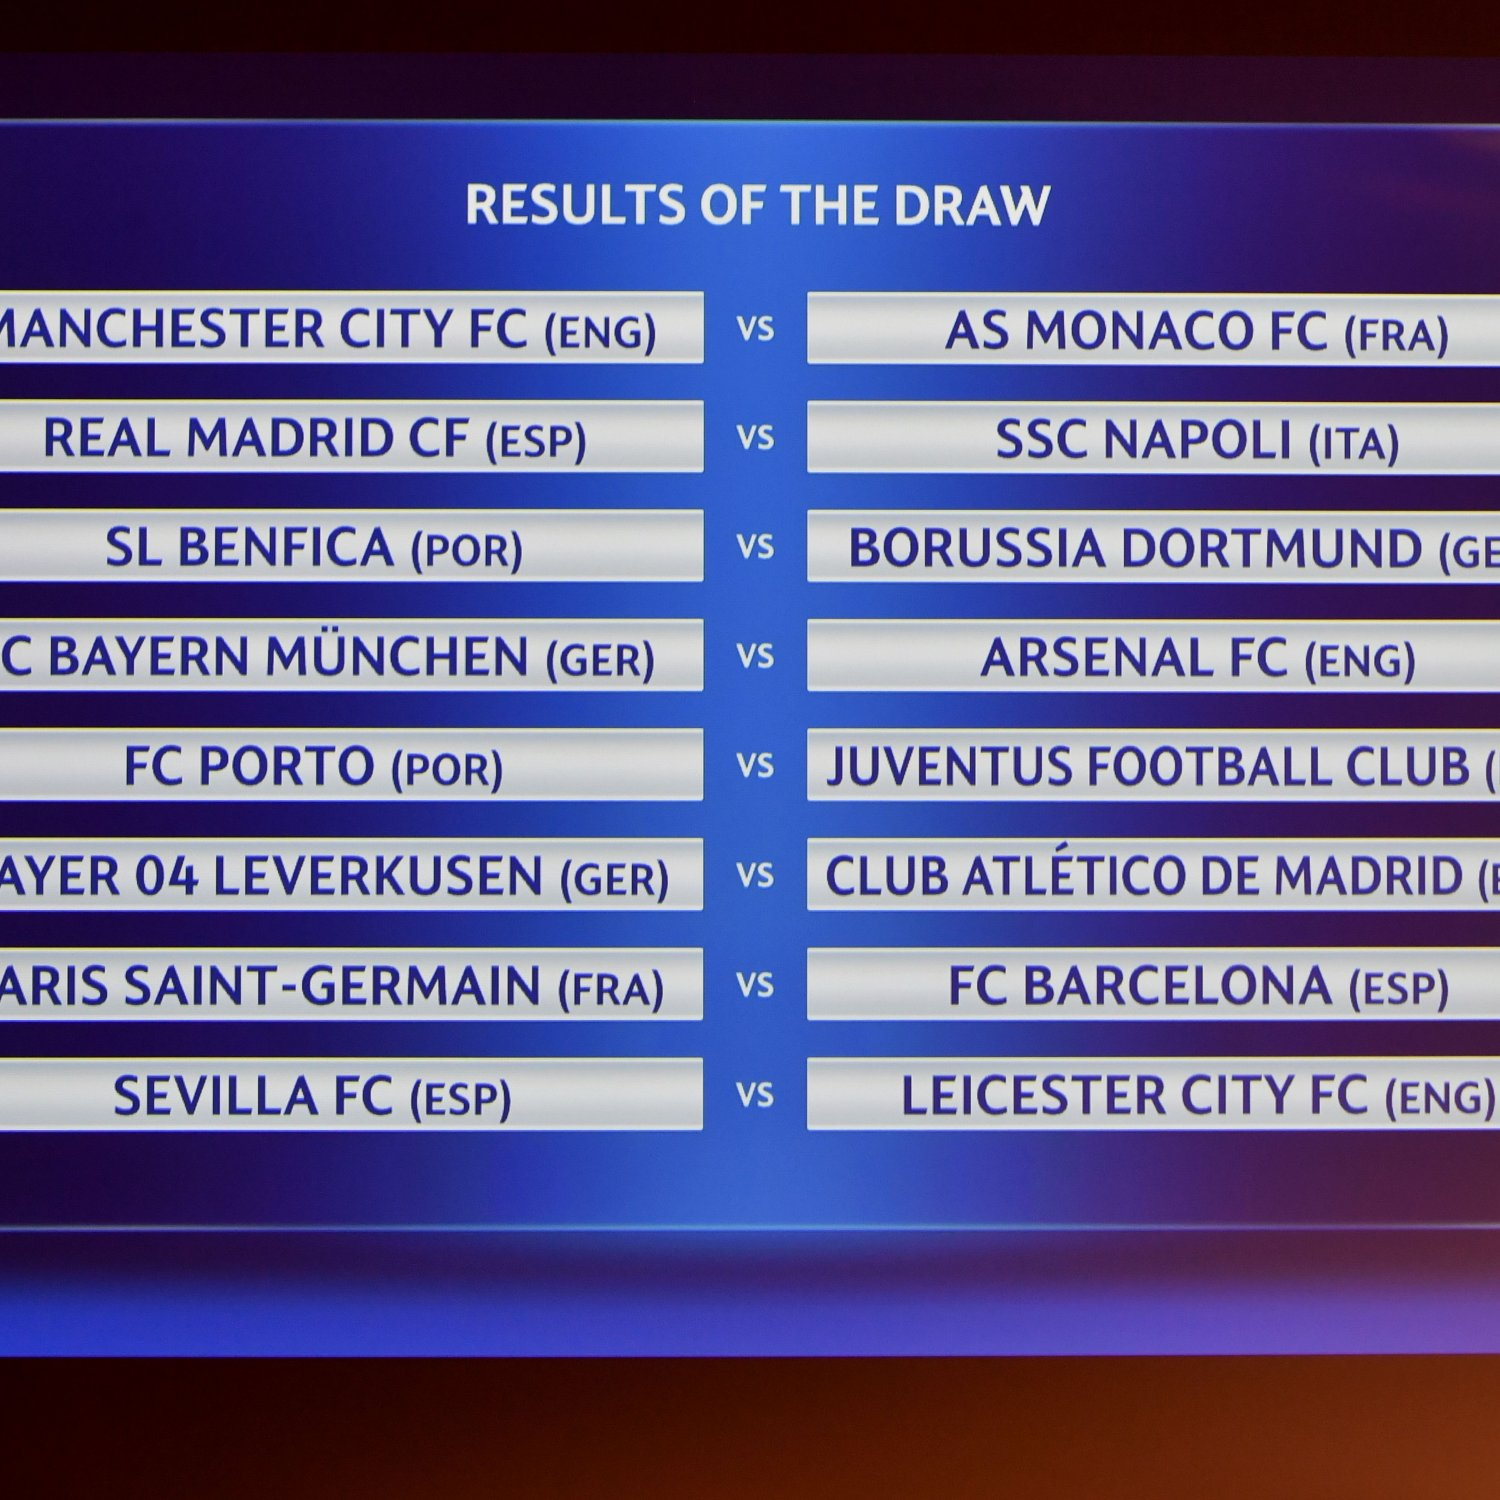 Champions League Next Fixture: Champions League Draw 2016-17: Round-of-16 Fixture